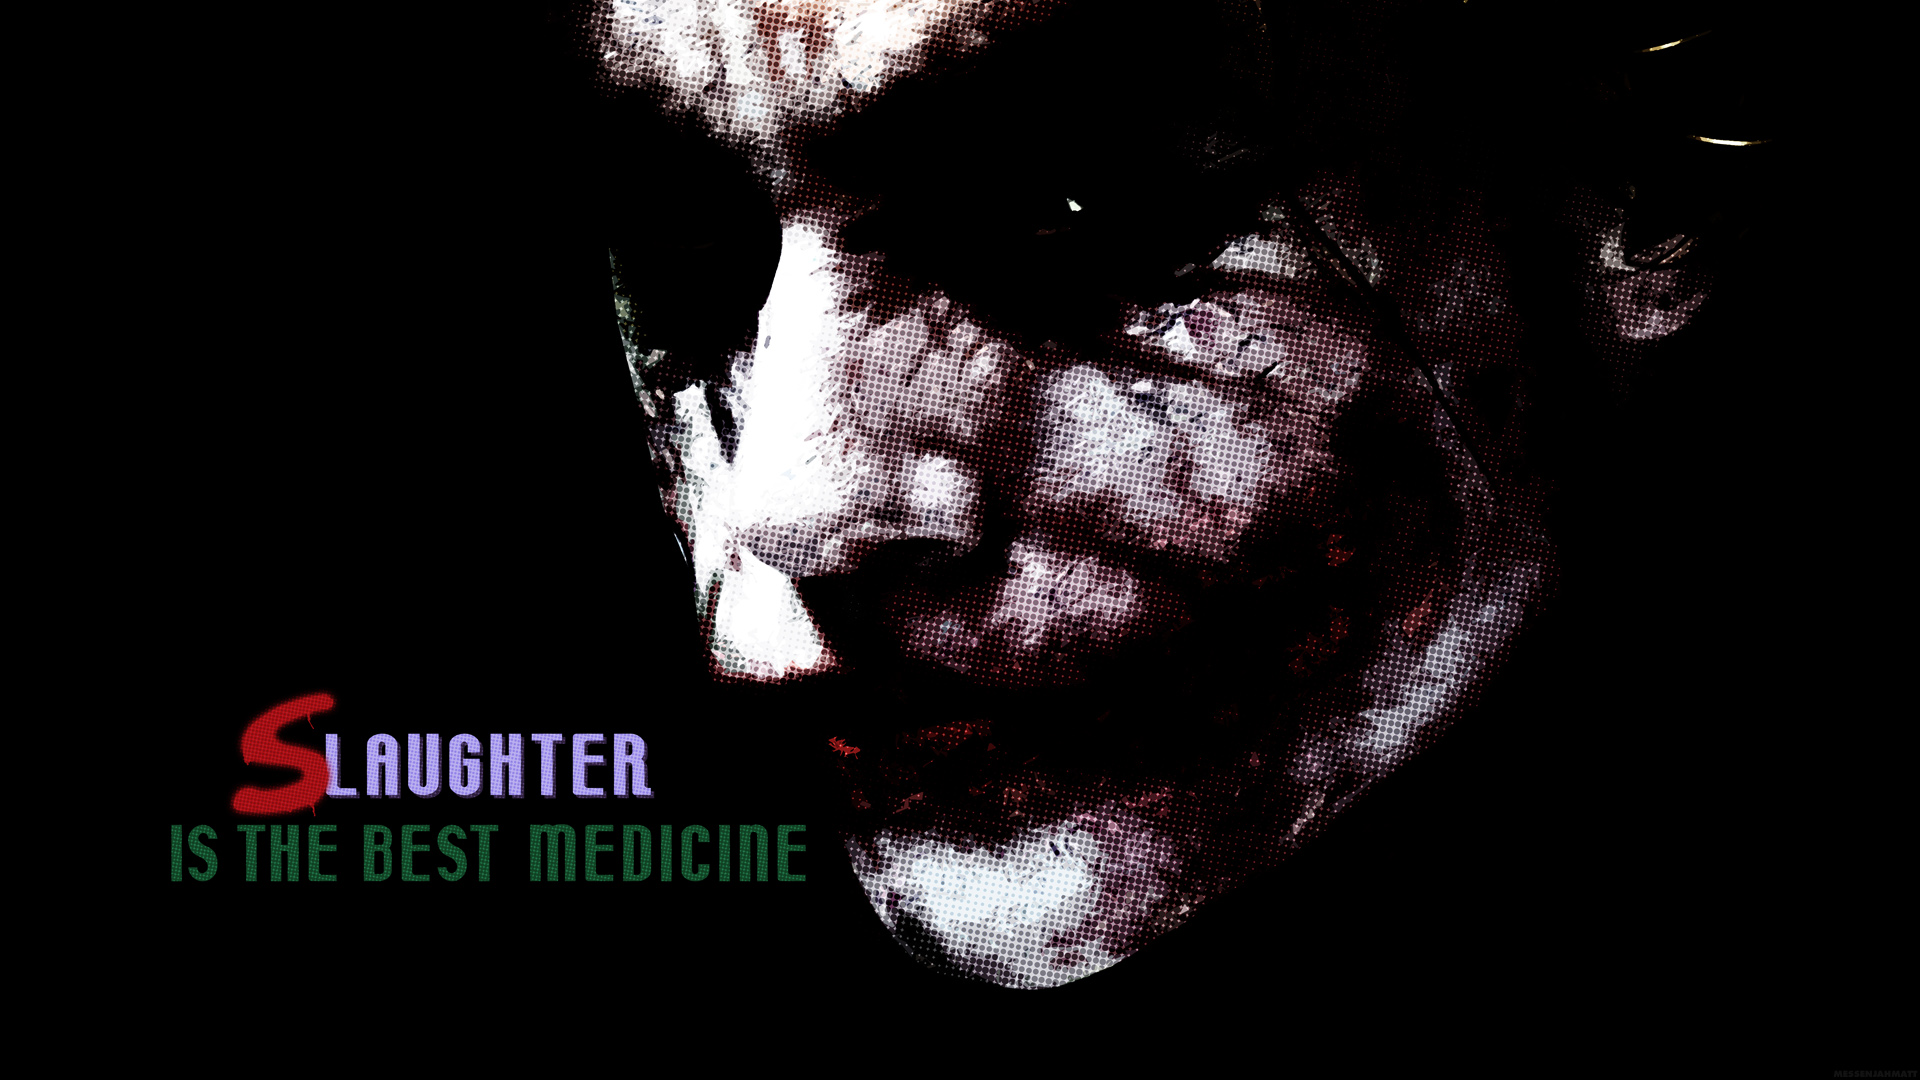 96 The Joker Wallpaper Hd Joker HD Wallpapers Top 781 For Mobile